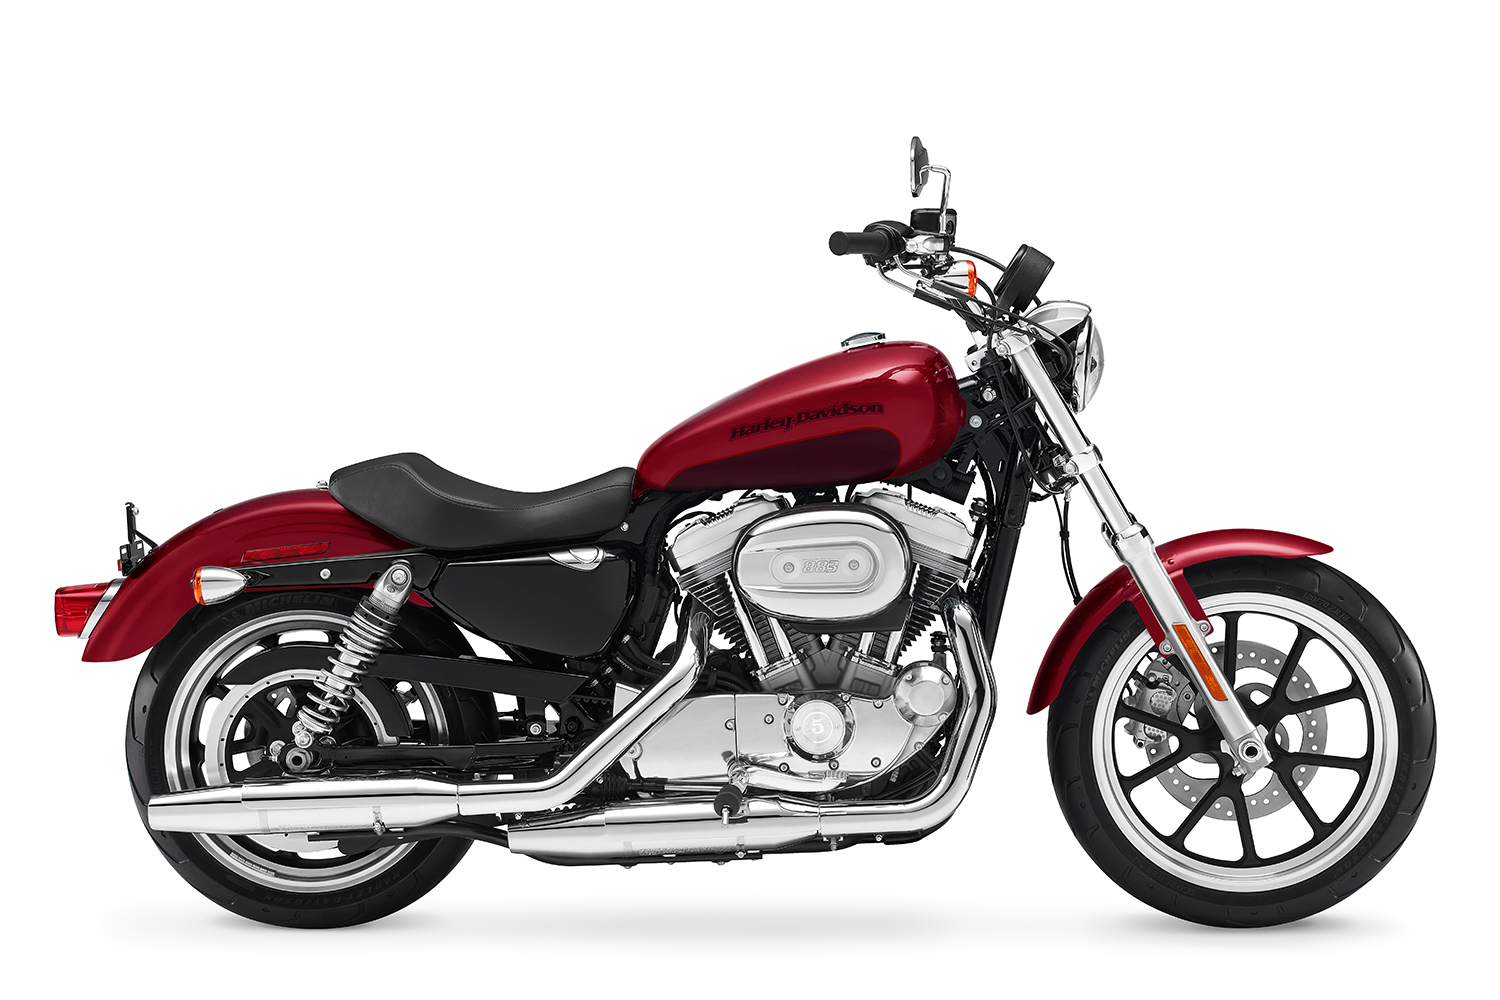 Financing at Destination Harley-Davidson